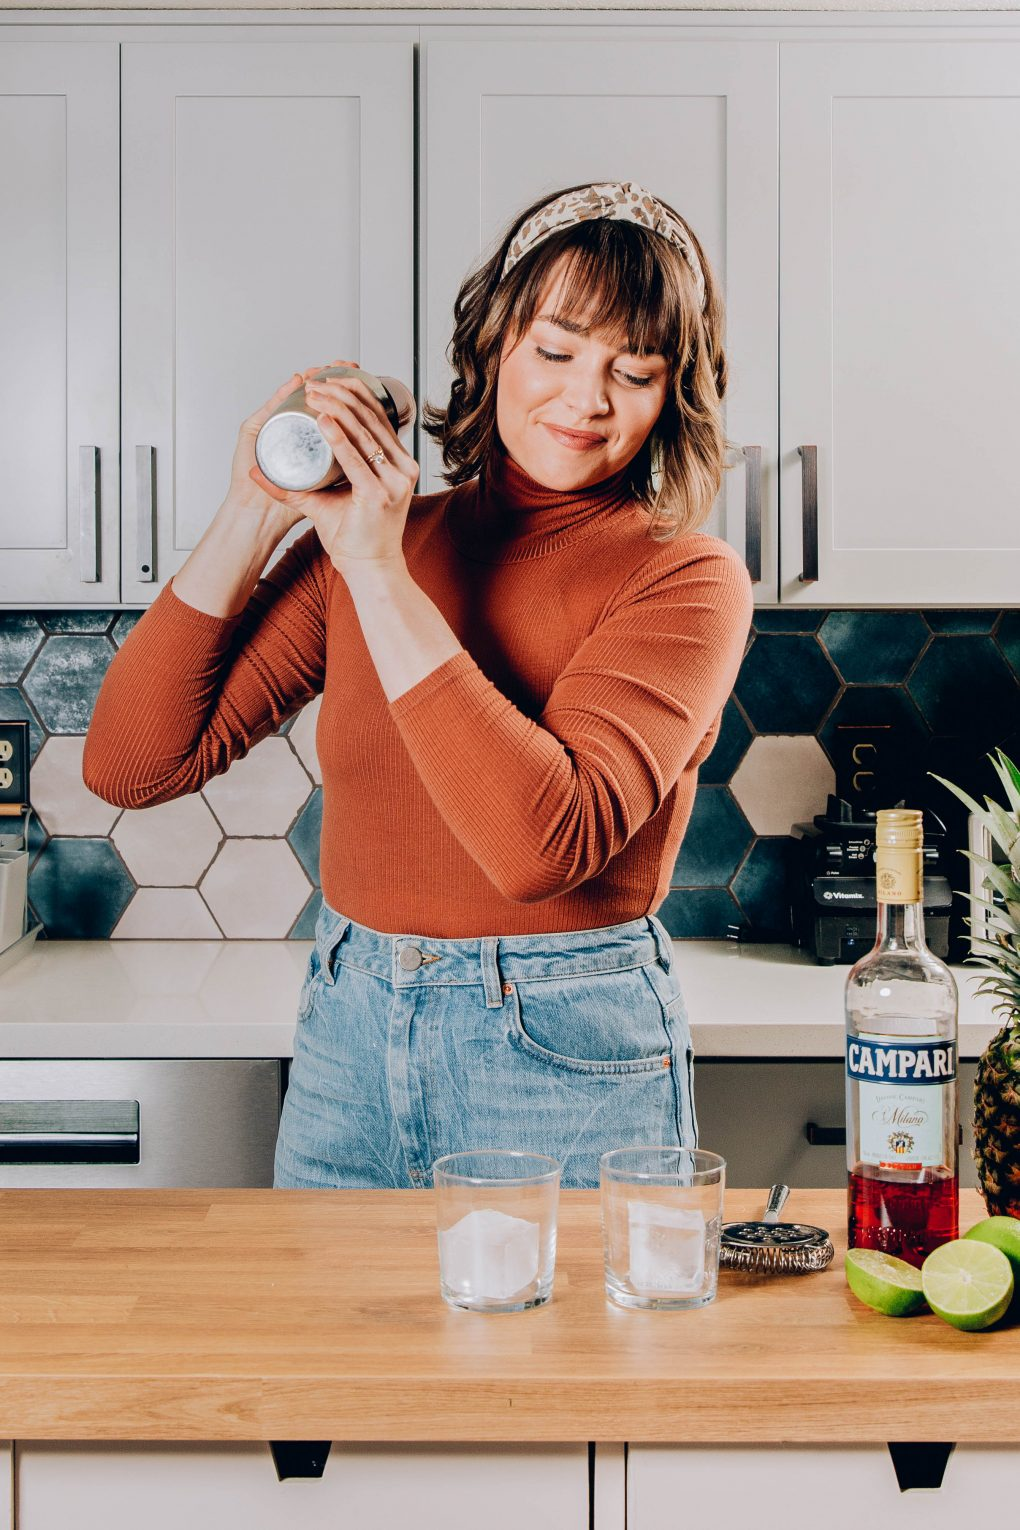 Picture of Nyssa, shaking a jungle bird cocktail in her kitchen, smiling and looking down at a bottle of Campari.